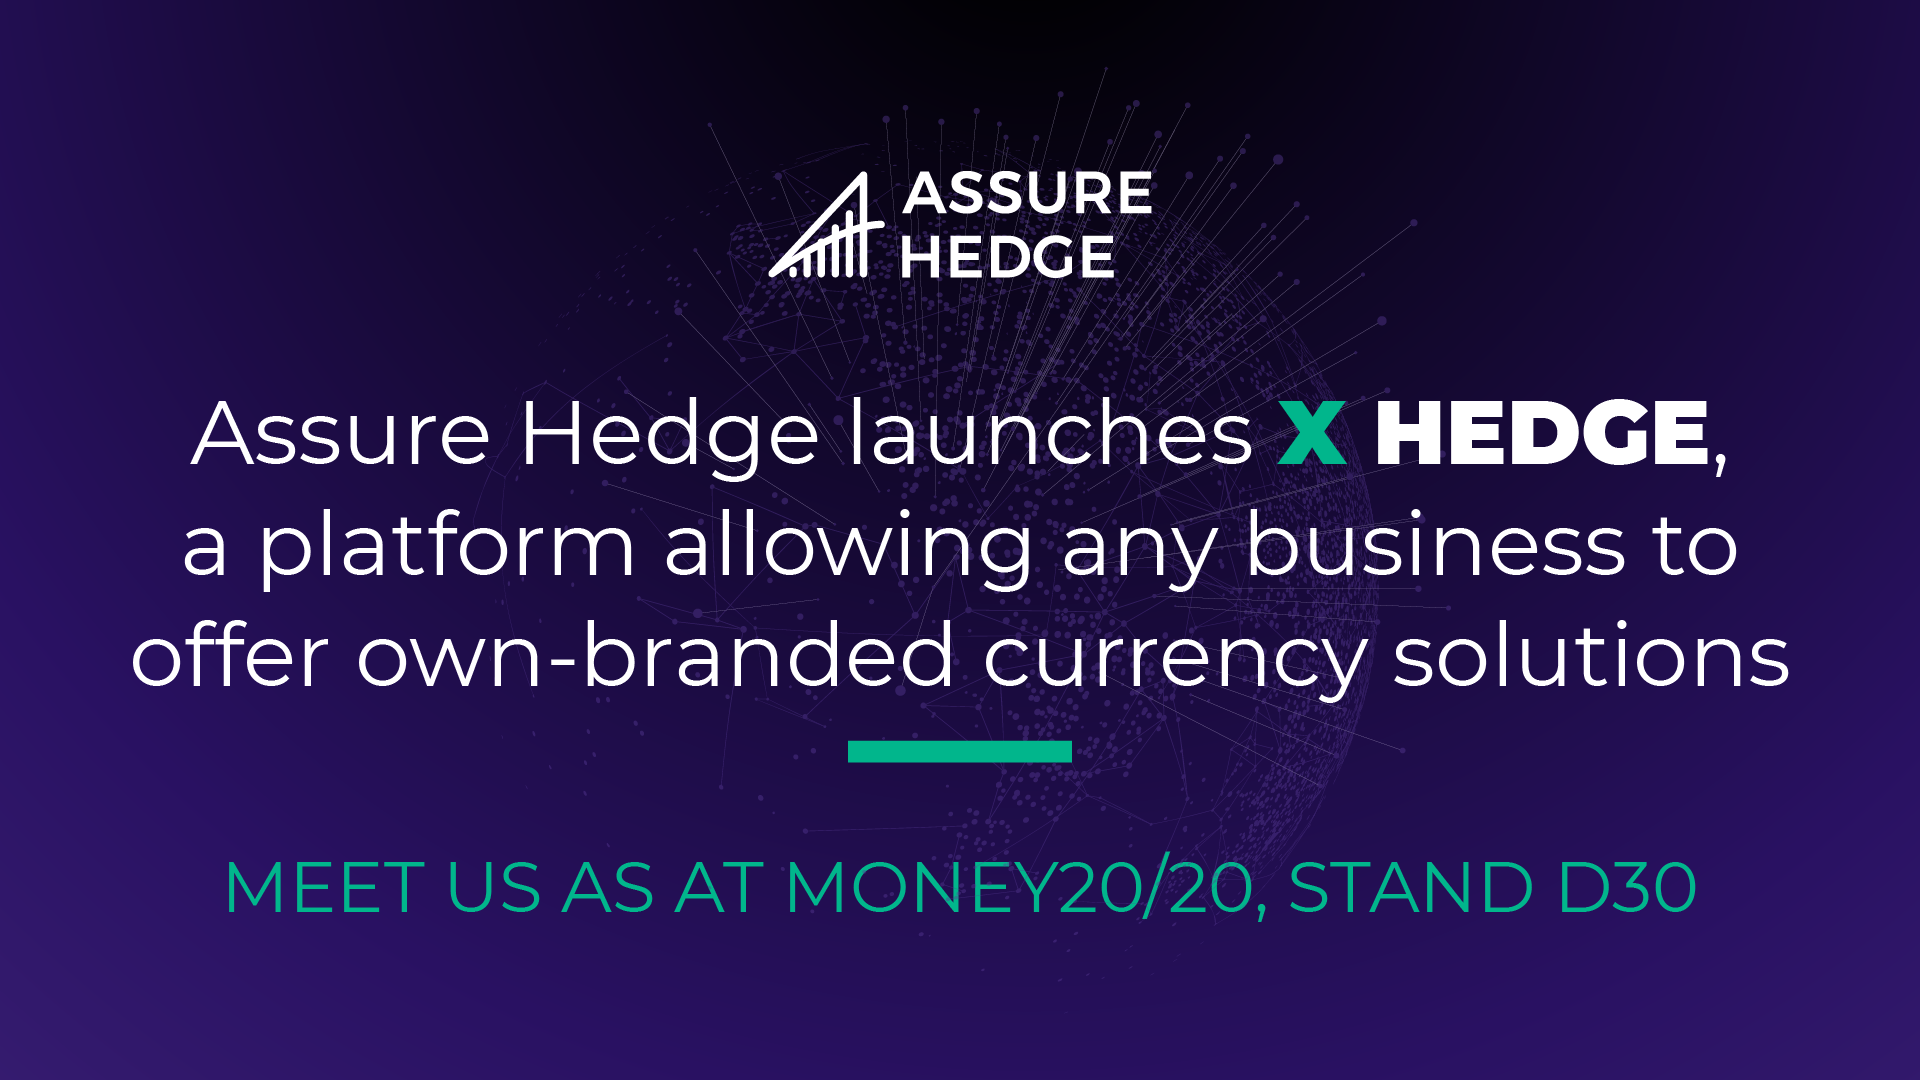 Assure Hedge launches X Hedge